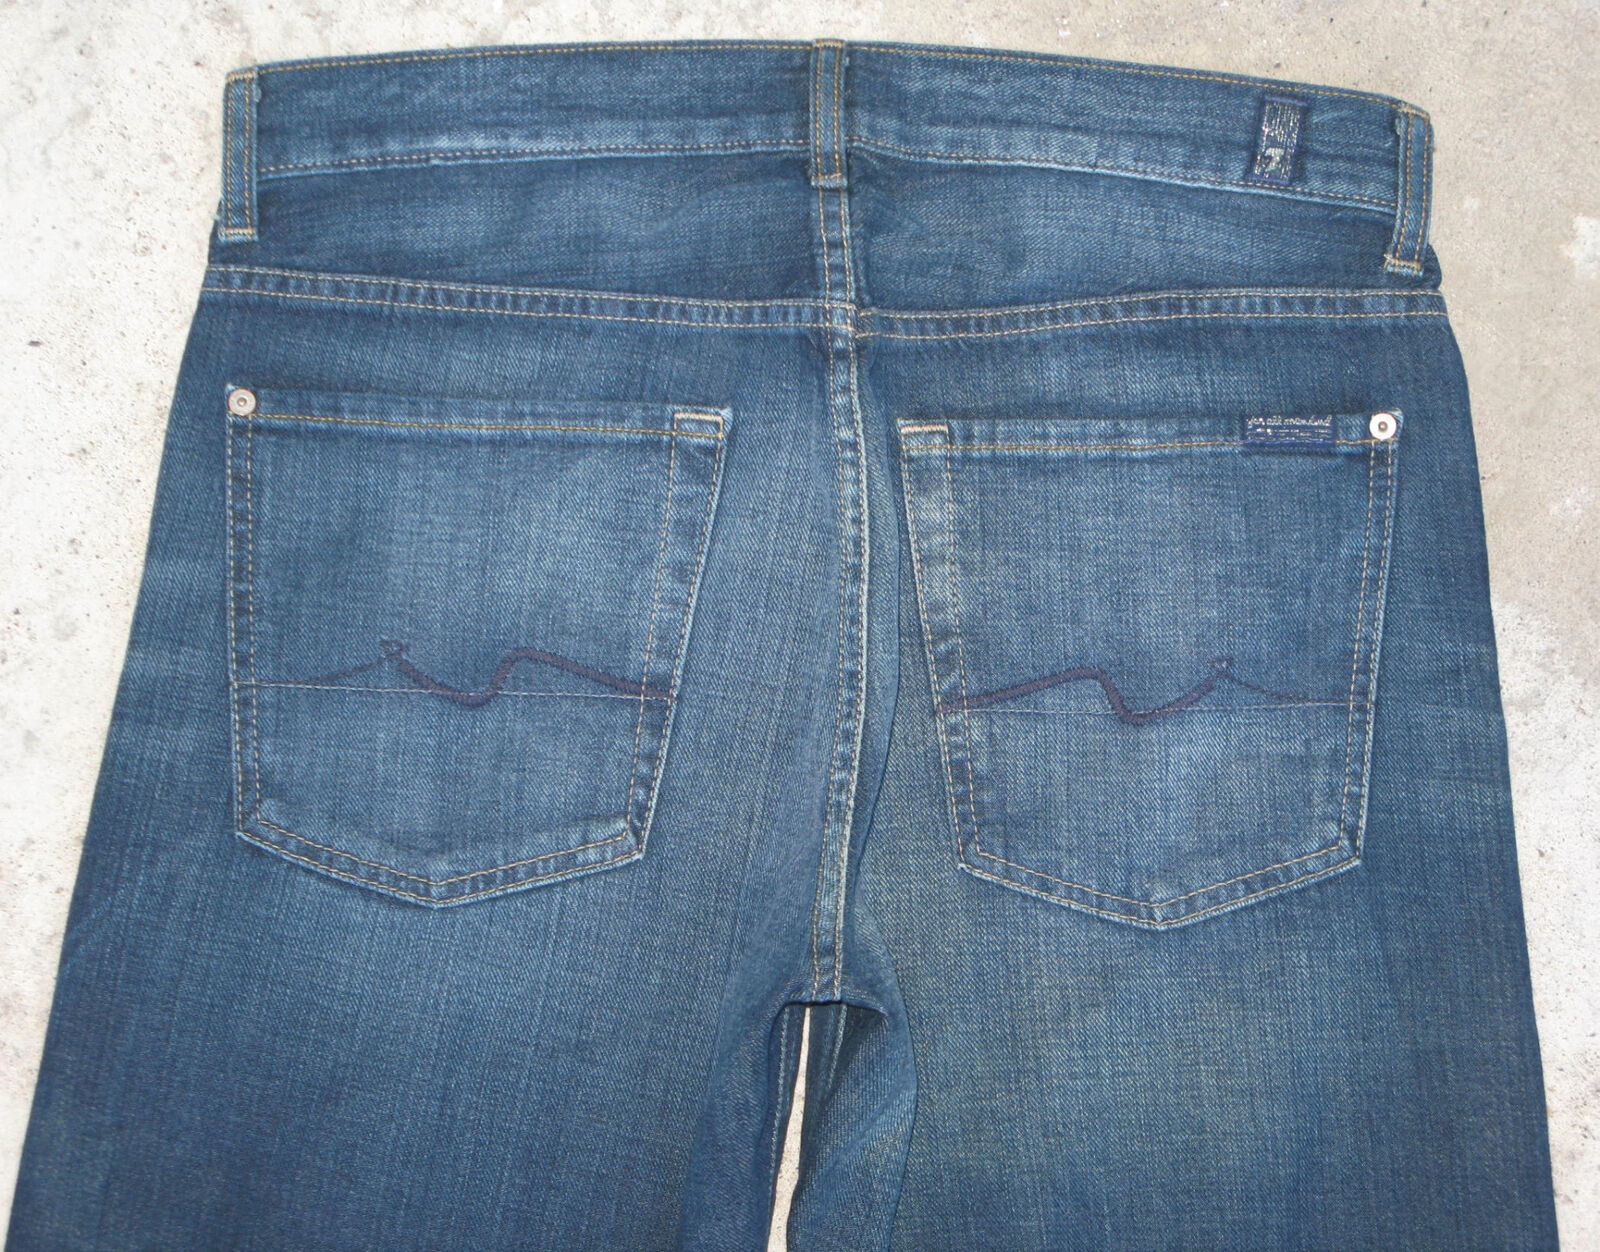 7 For all Mankind Men's Relaxed Jeans Sz 31 X 32 Distressed 100% Cotton